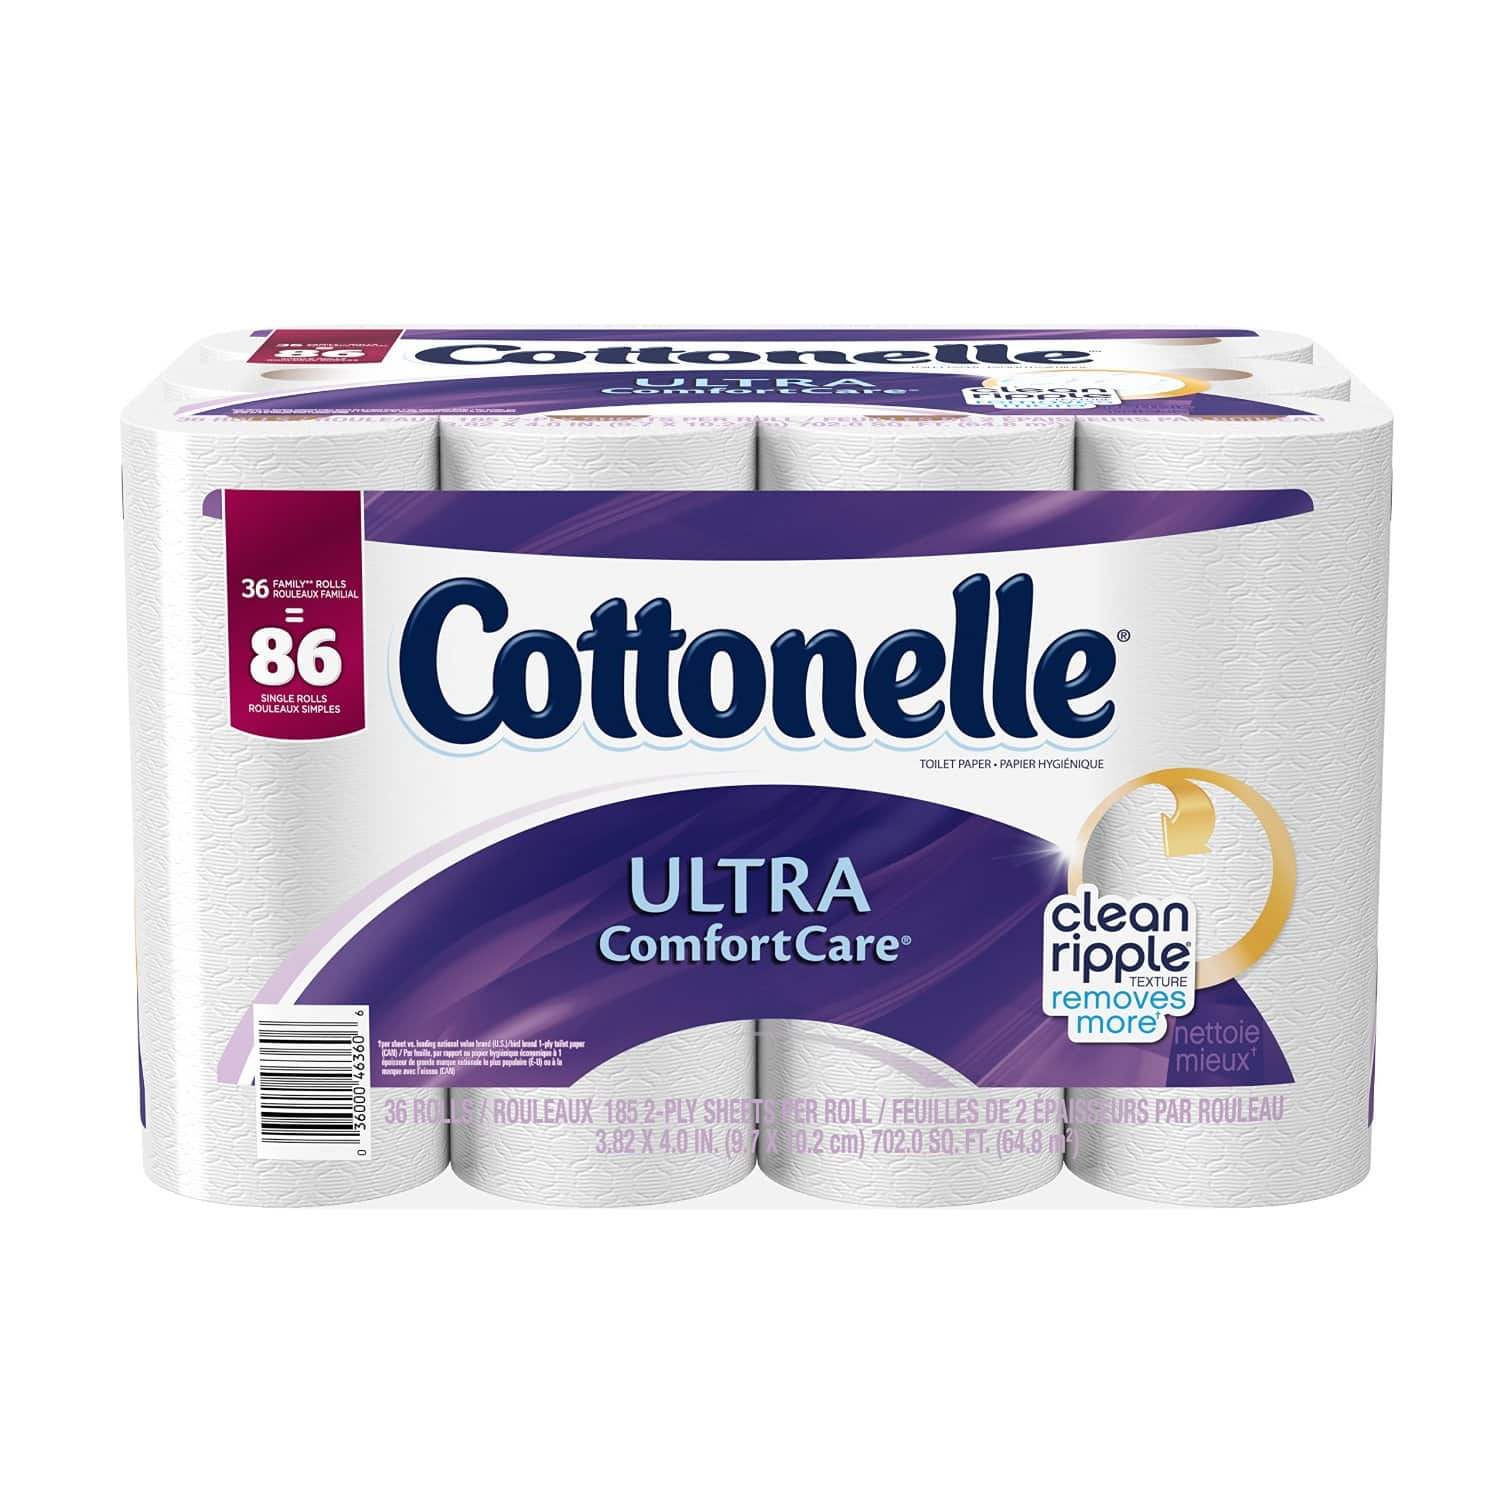 Back Again - Previous 142+TU FP deal - Cottonelle Ultra Comfortcard or CleanCare Toilet Paper Bath Tissue, 36 Family Rolls as low as $13.32